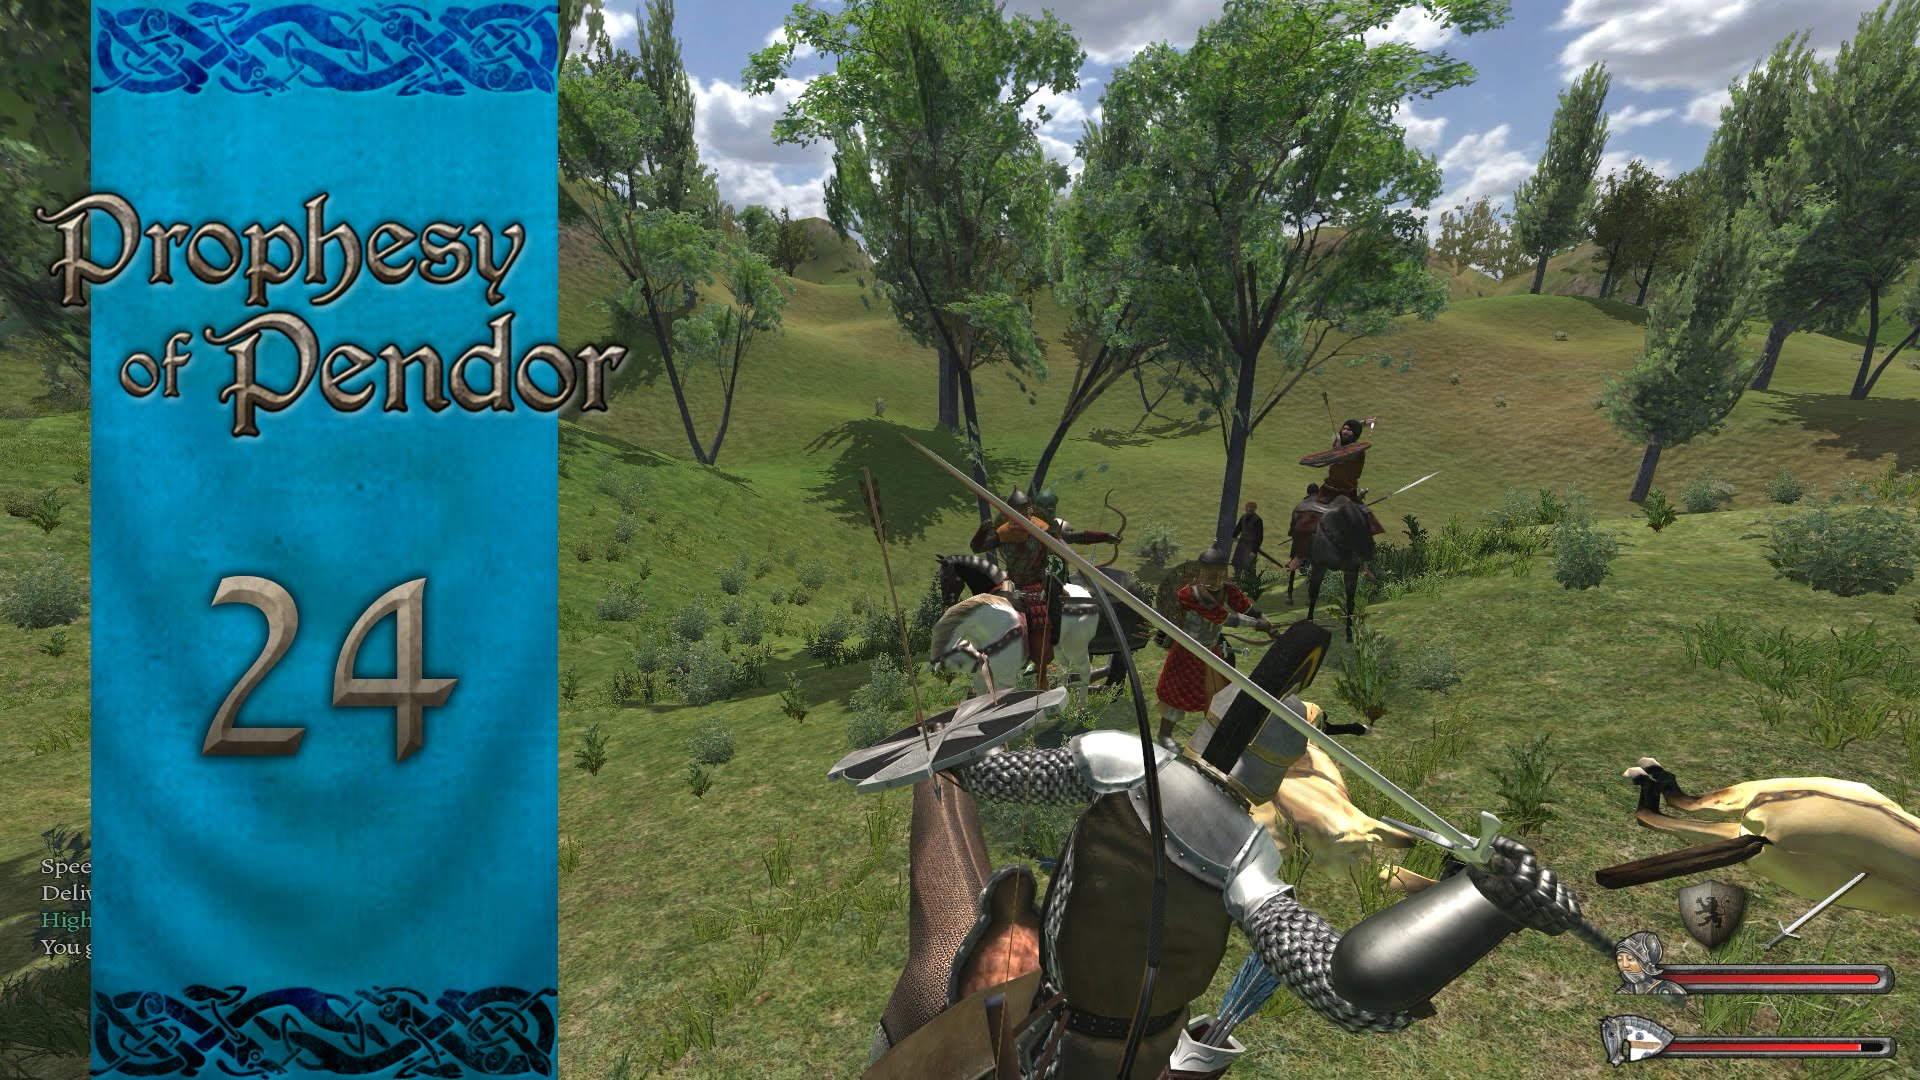 Mount and Blade: Warband Lets Play - forums.taleworlds.com